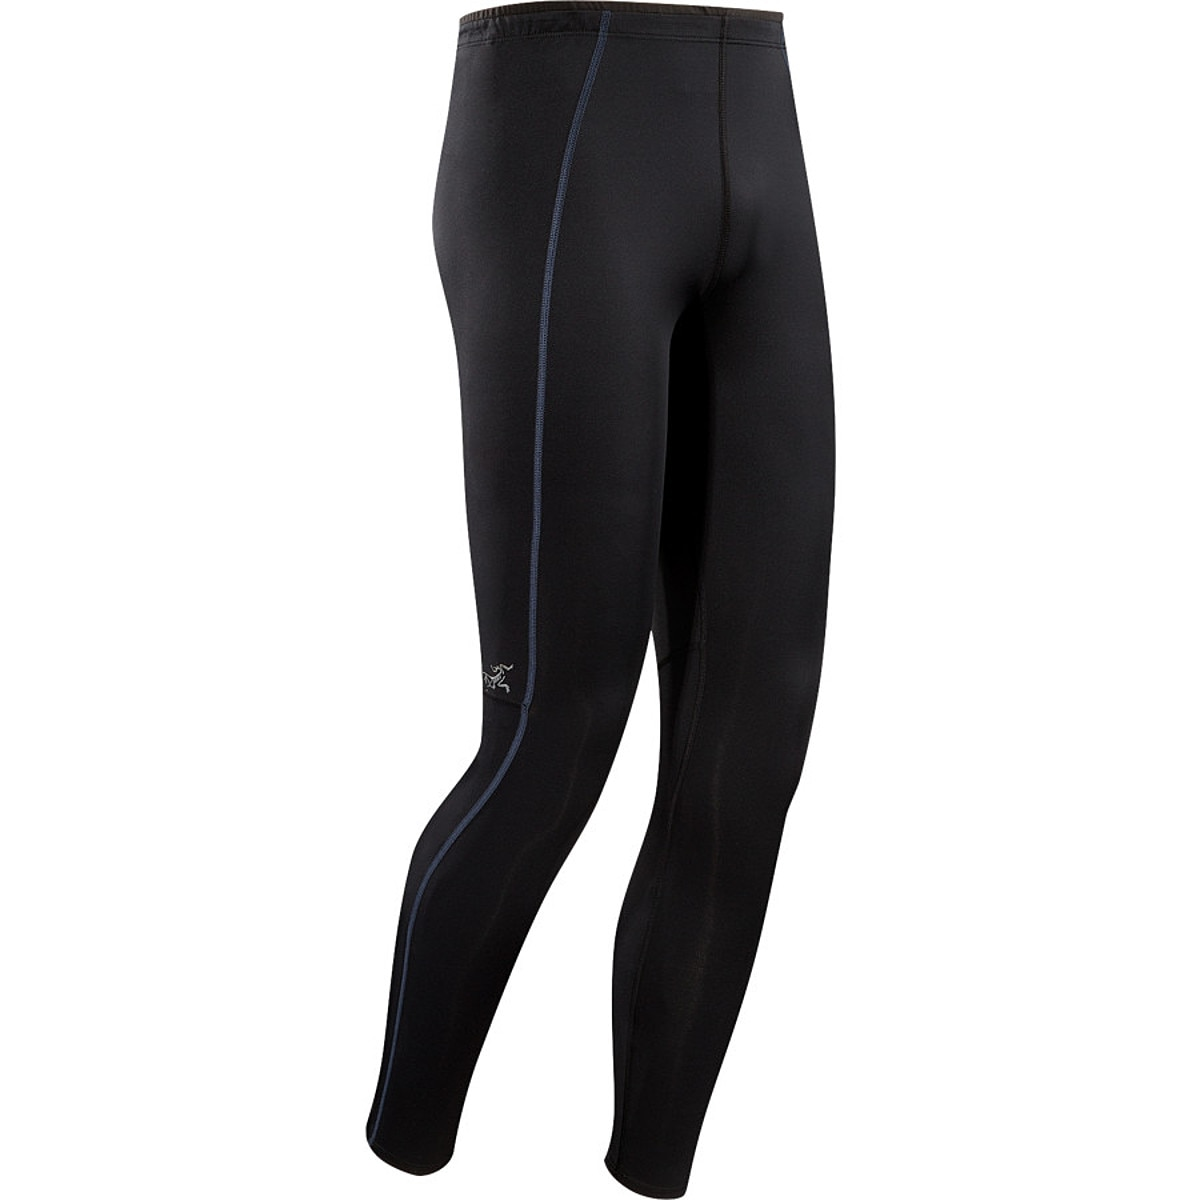 Arc'teryx Accelero Tight